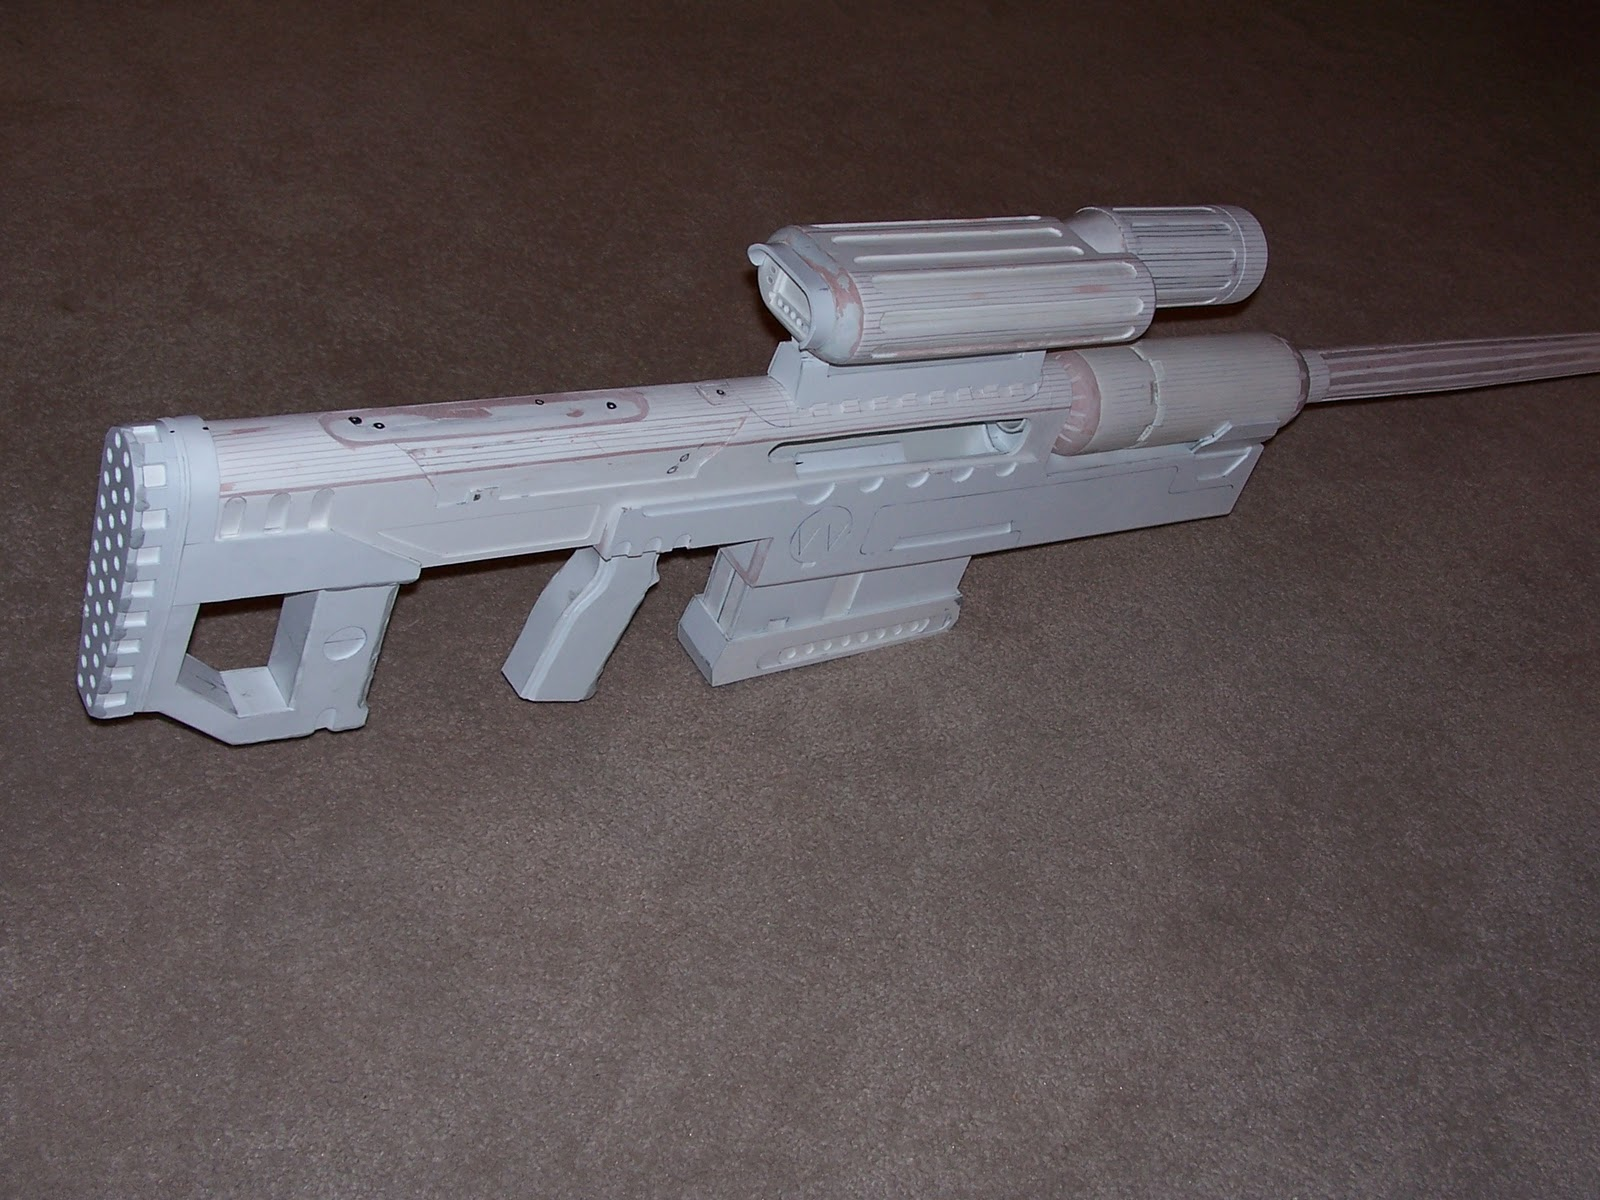 Tactonyx halo weapons thread halo costume and prop maker community daguns004g malvernweather Gallery